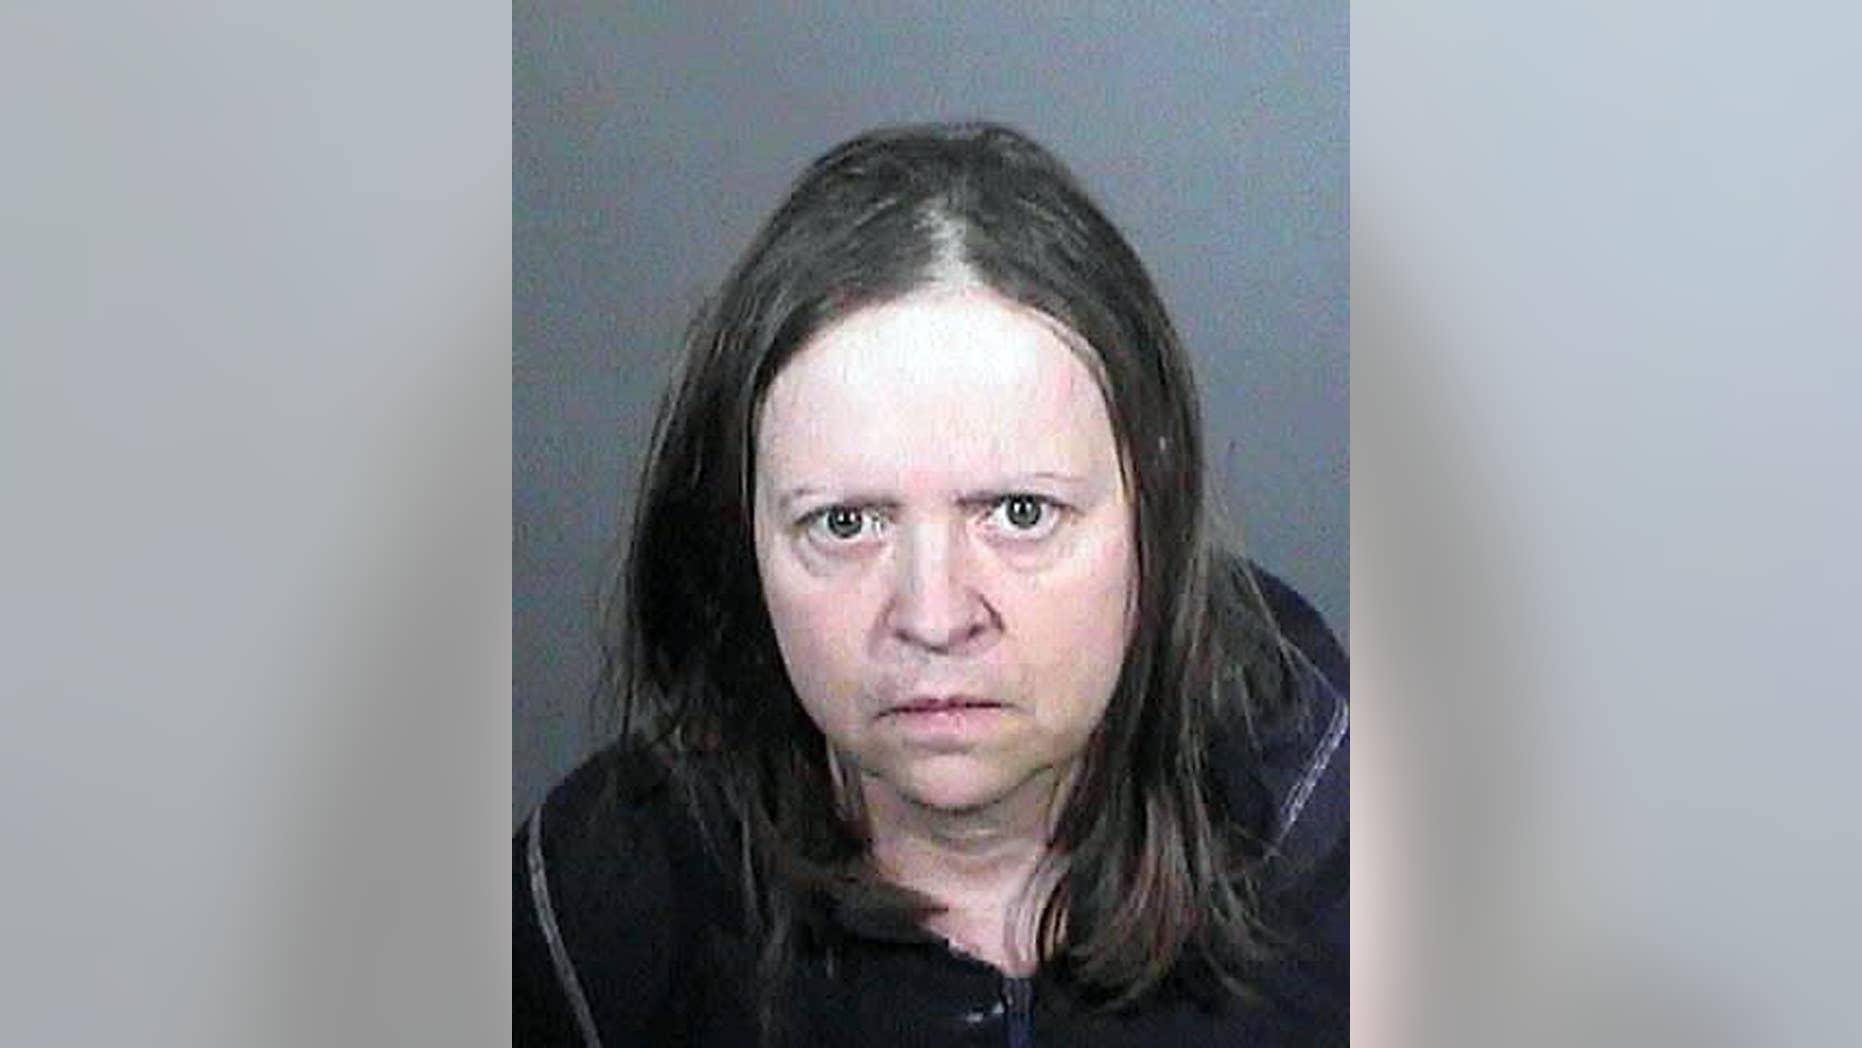 This undated law enforcement booking photo from the Los Angeles County Sheriff's Office shows Cathryn Parker. Parker accused of stealing the identities of people working behind the scenes in Hollywood film production has lived under at least 74 aliases, Los Angeles County sheriff's officials said. As of Friday, April 17, 2015, Parker was in federal custody in Northern California, where she was wanted for probation violations. (Los Angeles County Sheriff's Office via AP)